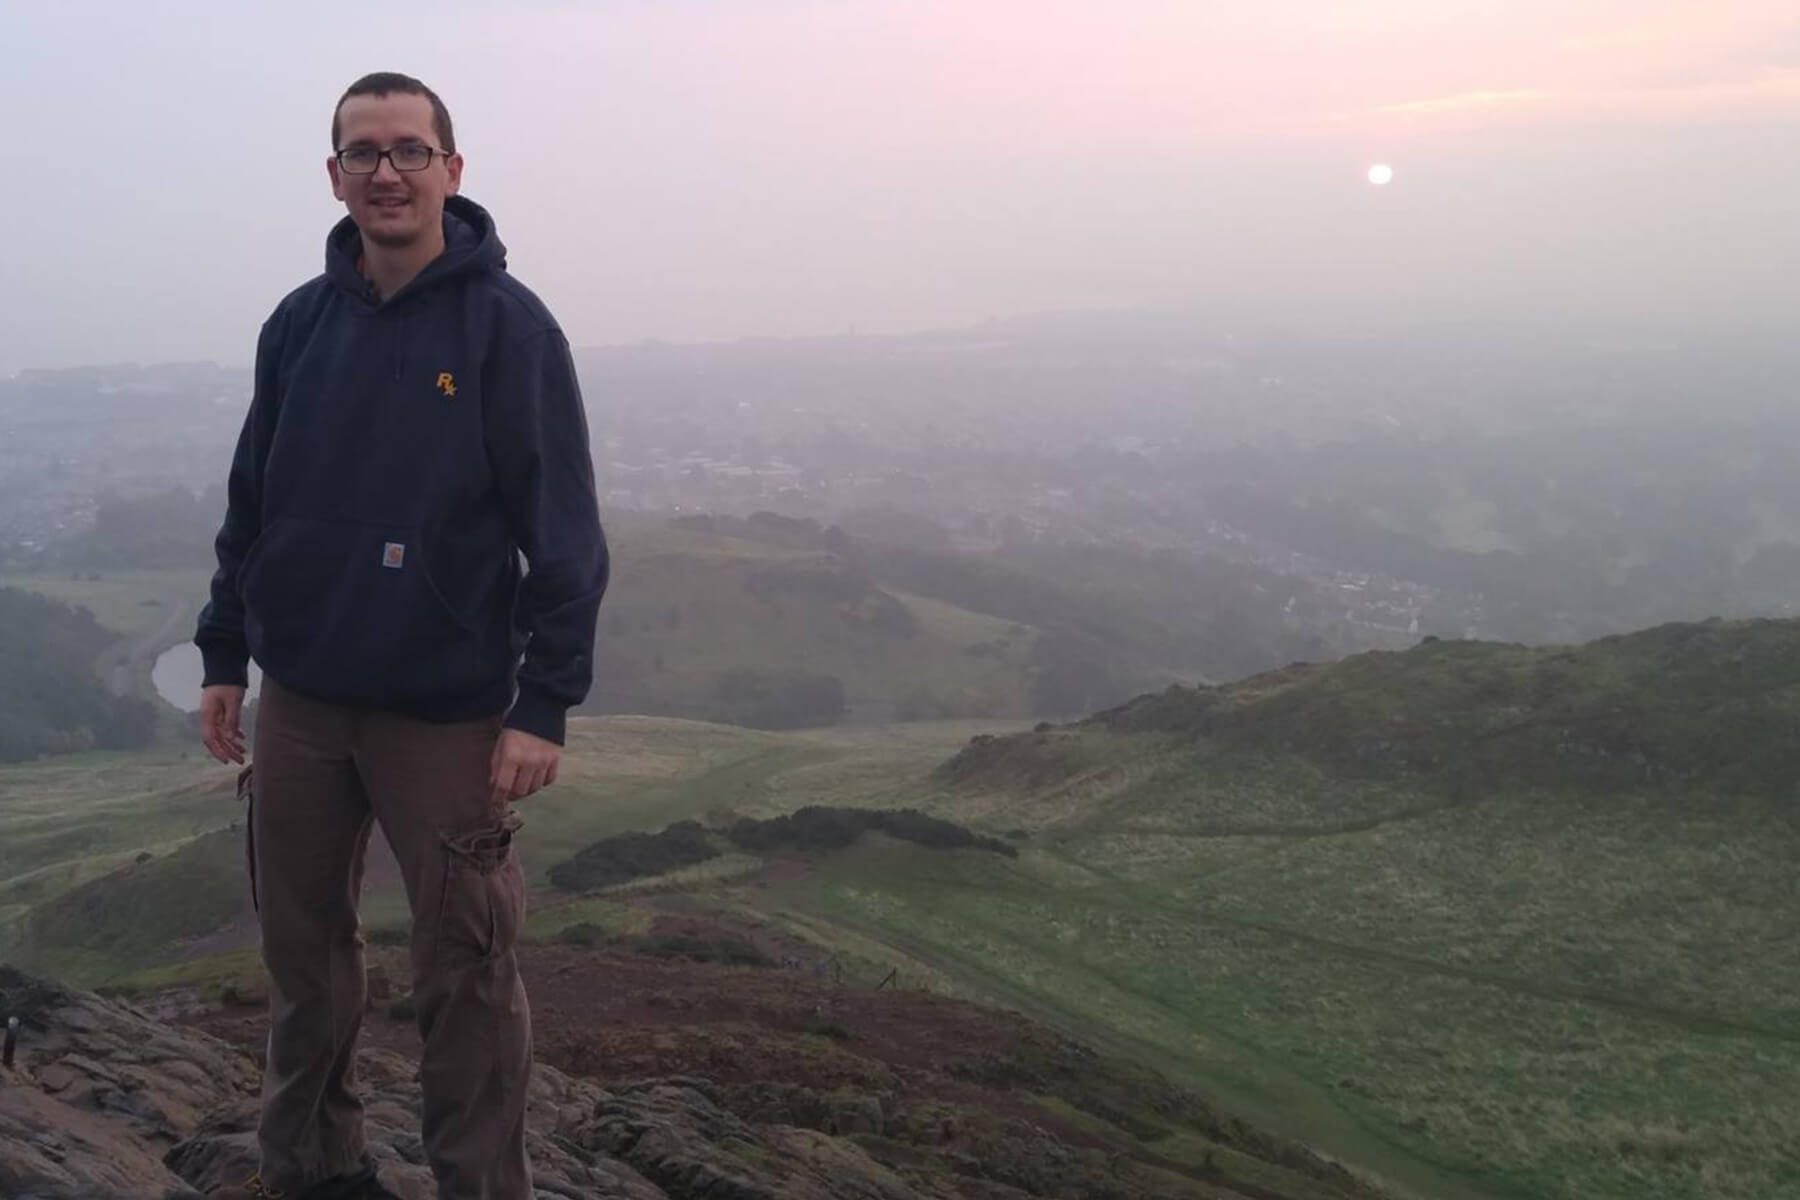 Andy Kibler poses at Arthur's Seat in Scotland